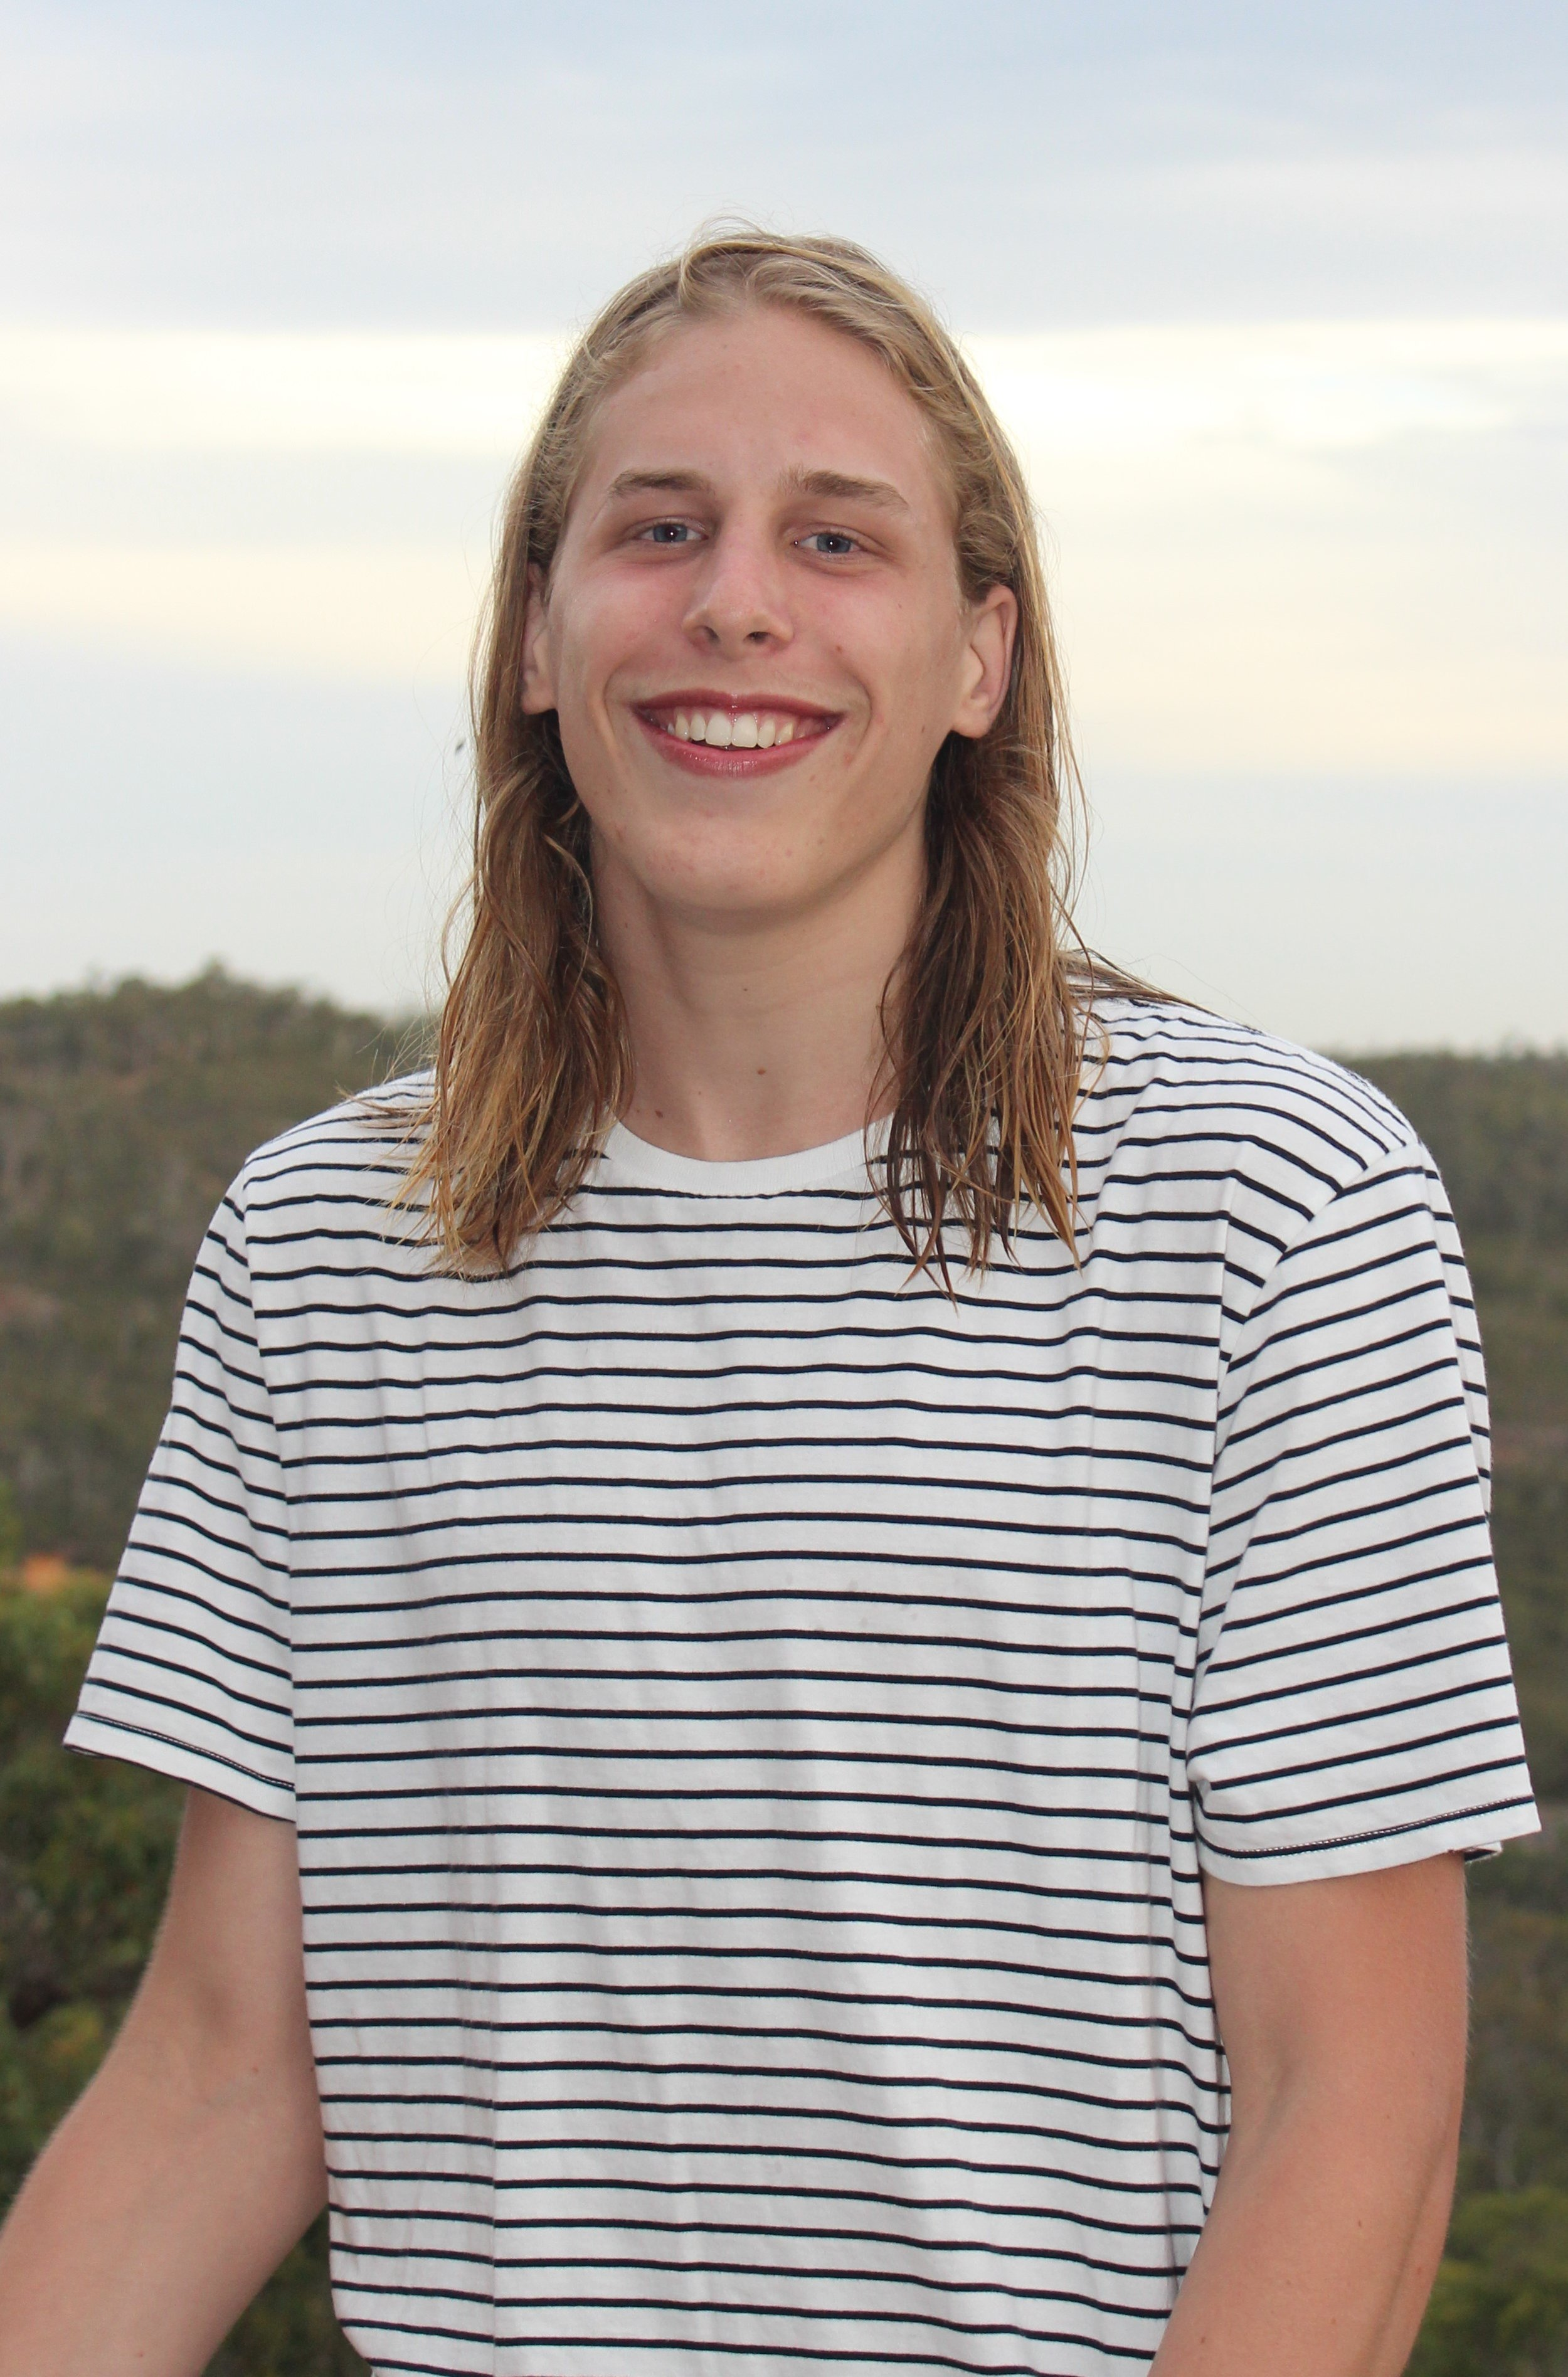 Hey I'm Matt and this will be my first year of being an RA. I am in my third year of studying Medical Science and Finance as part of my lifelong dream in becoming a doctor. I call Mandurah home and in my spare time I enjoy playing FIFA with my mates, despite not being the very good. If you're ever in the mood to beat someone at FIFA feel free to swing by my room anytime!